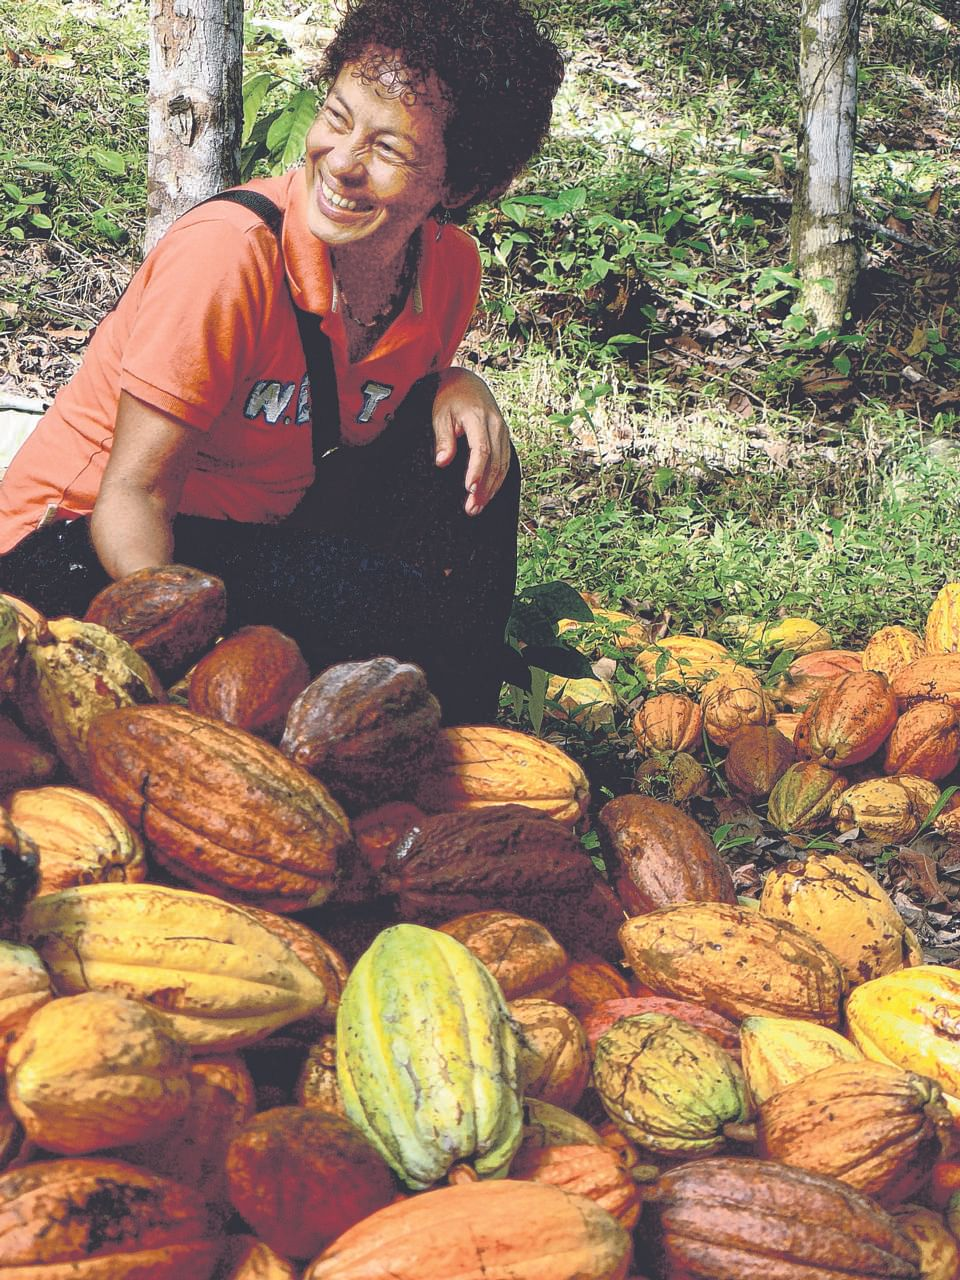 ForestFinance's cocoa forests in Panama. The firm invites investors to buy shares (that is, trees) in forests that are ethically and sustainably managed.